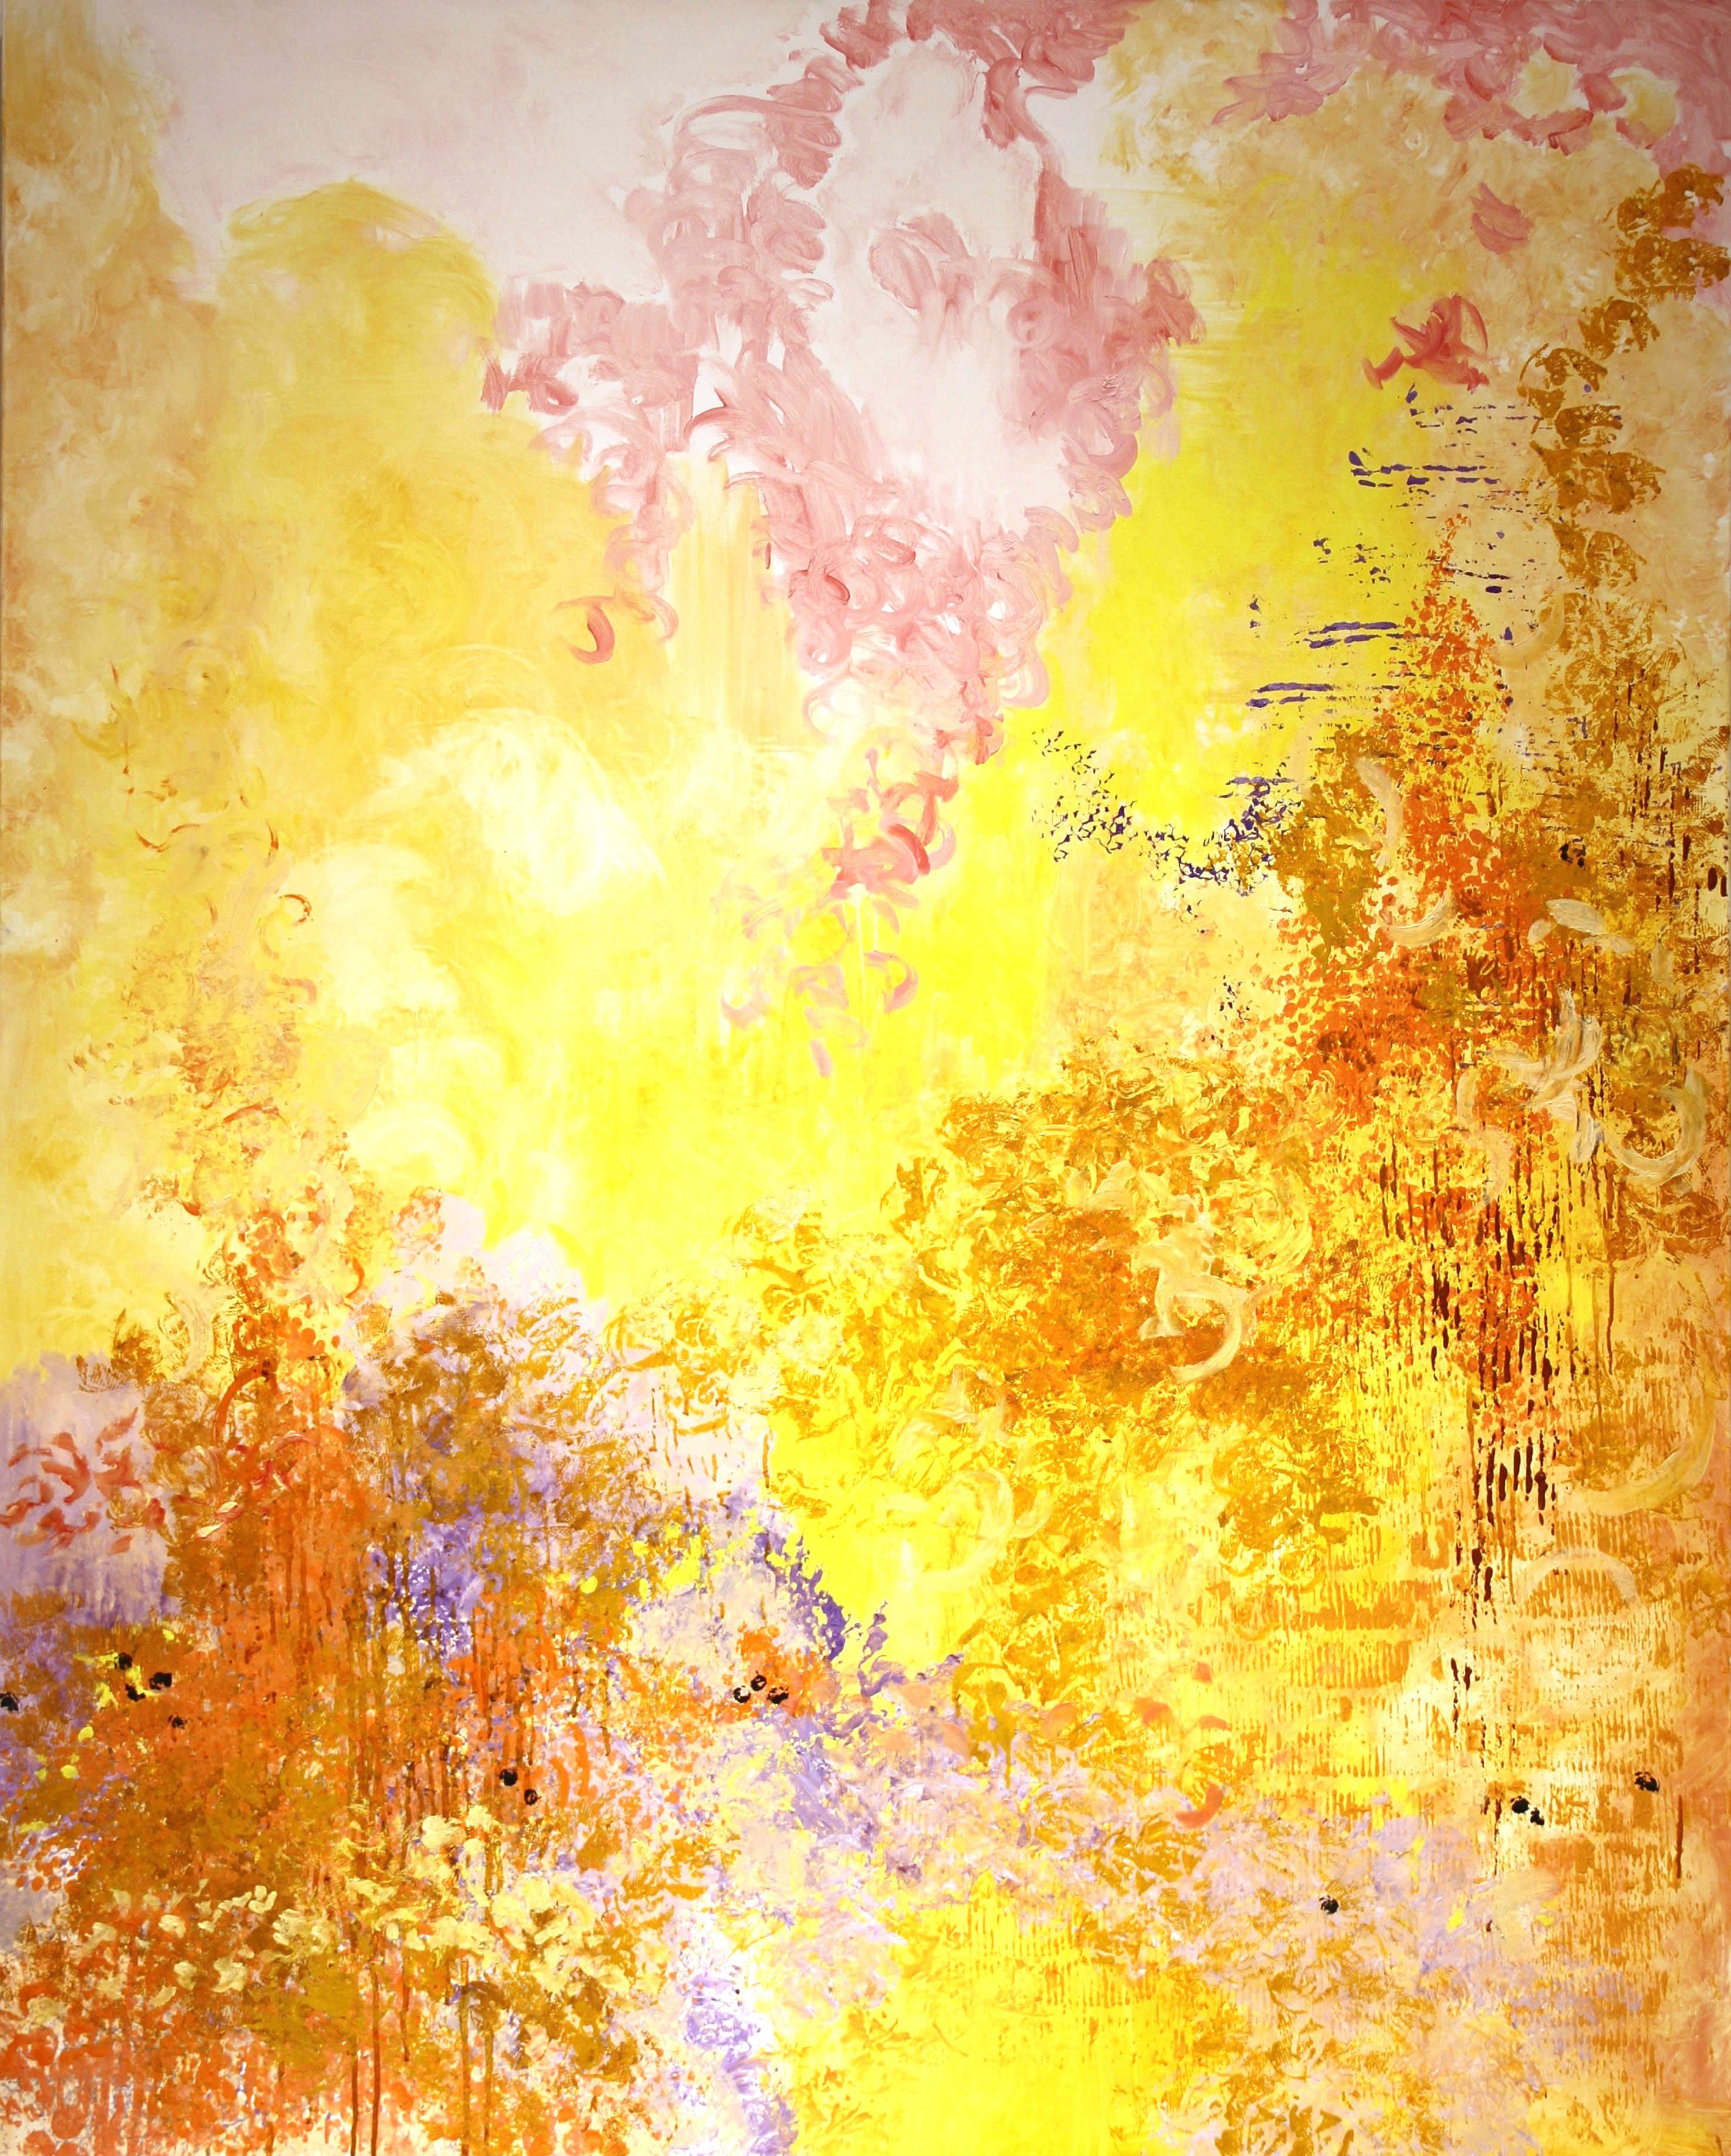 Large painting with yellow, peach, lavender, and pink